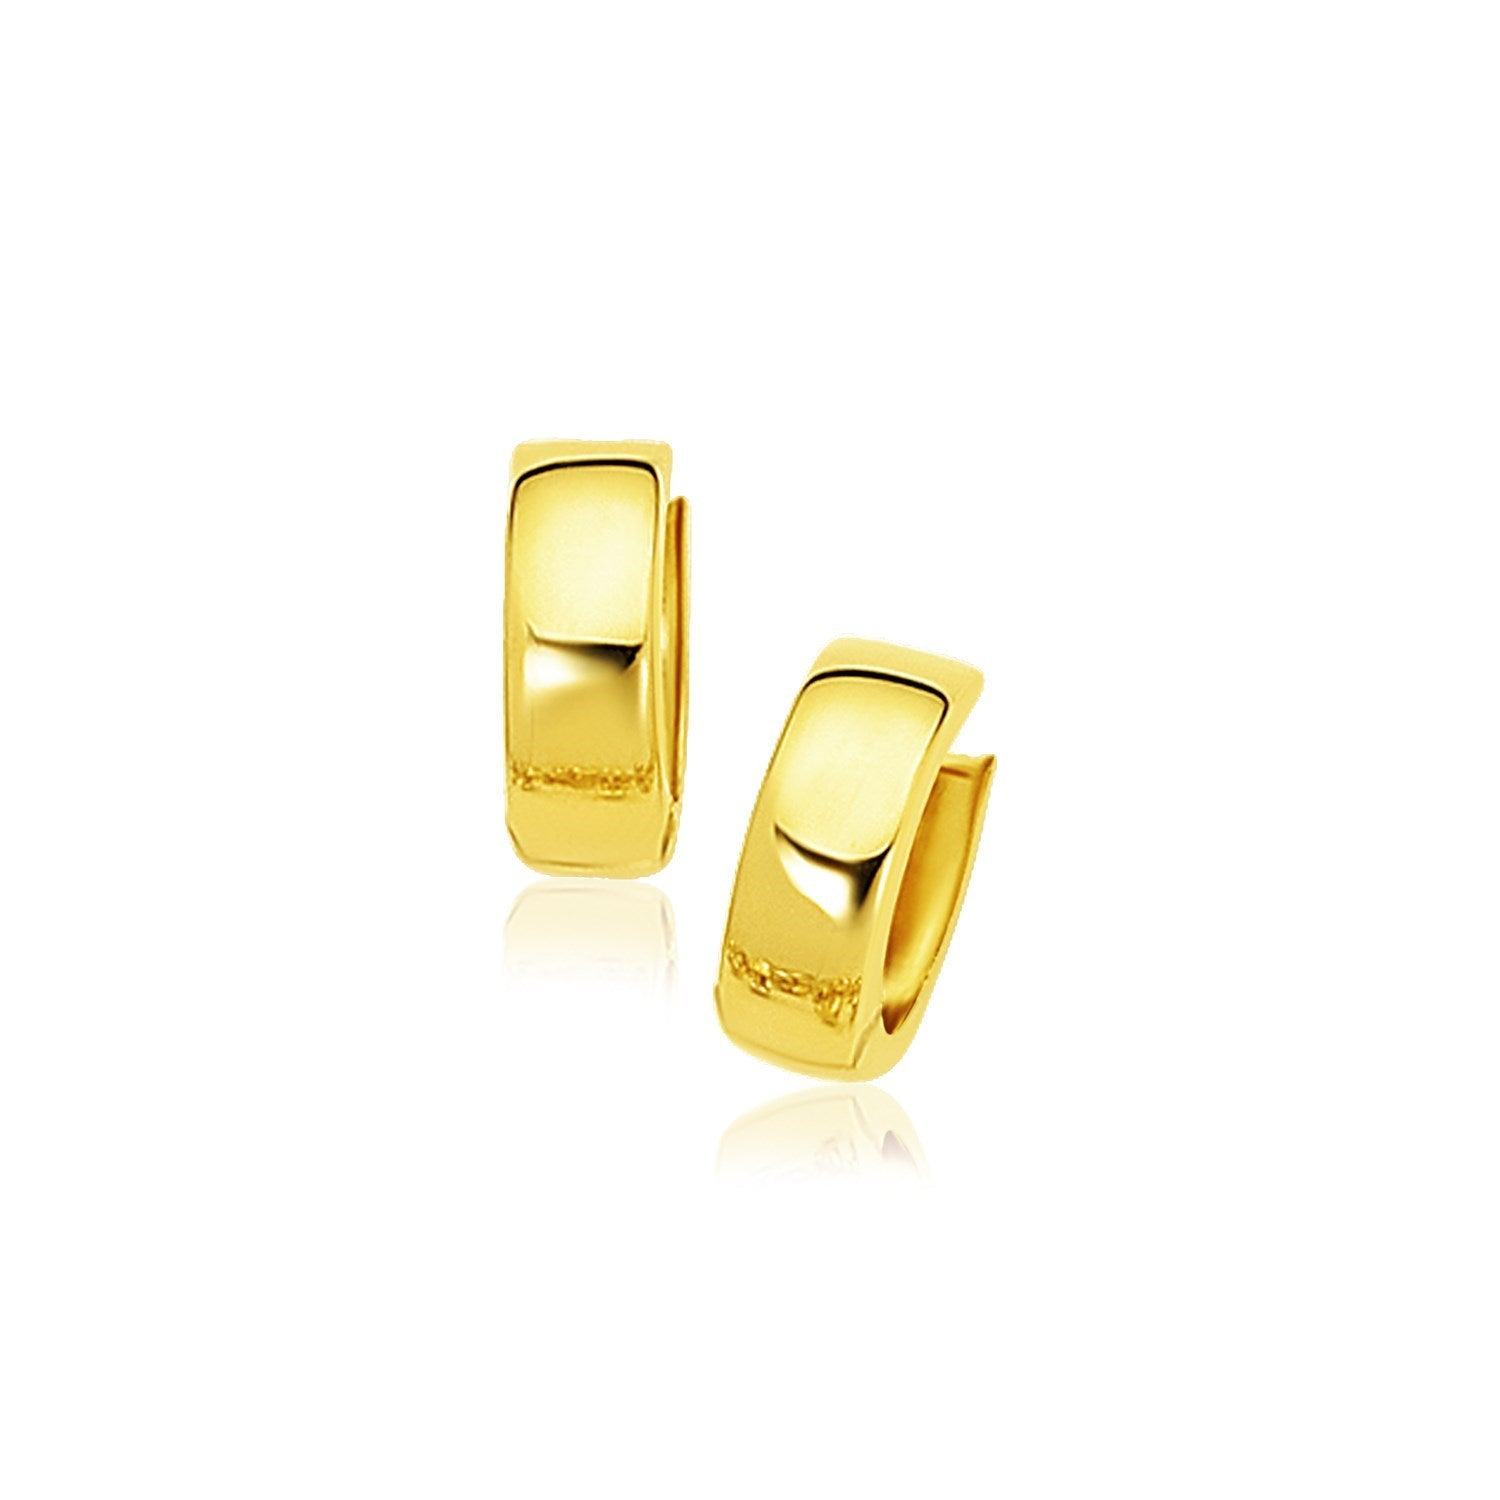 10K Yellow Gold Snuggable Hoop Earrings